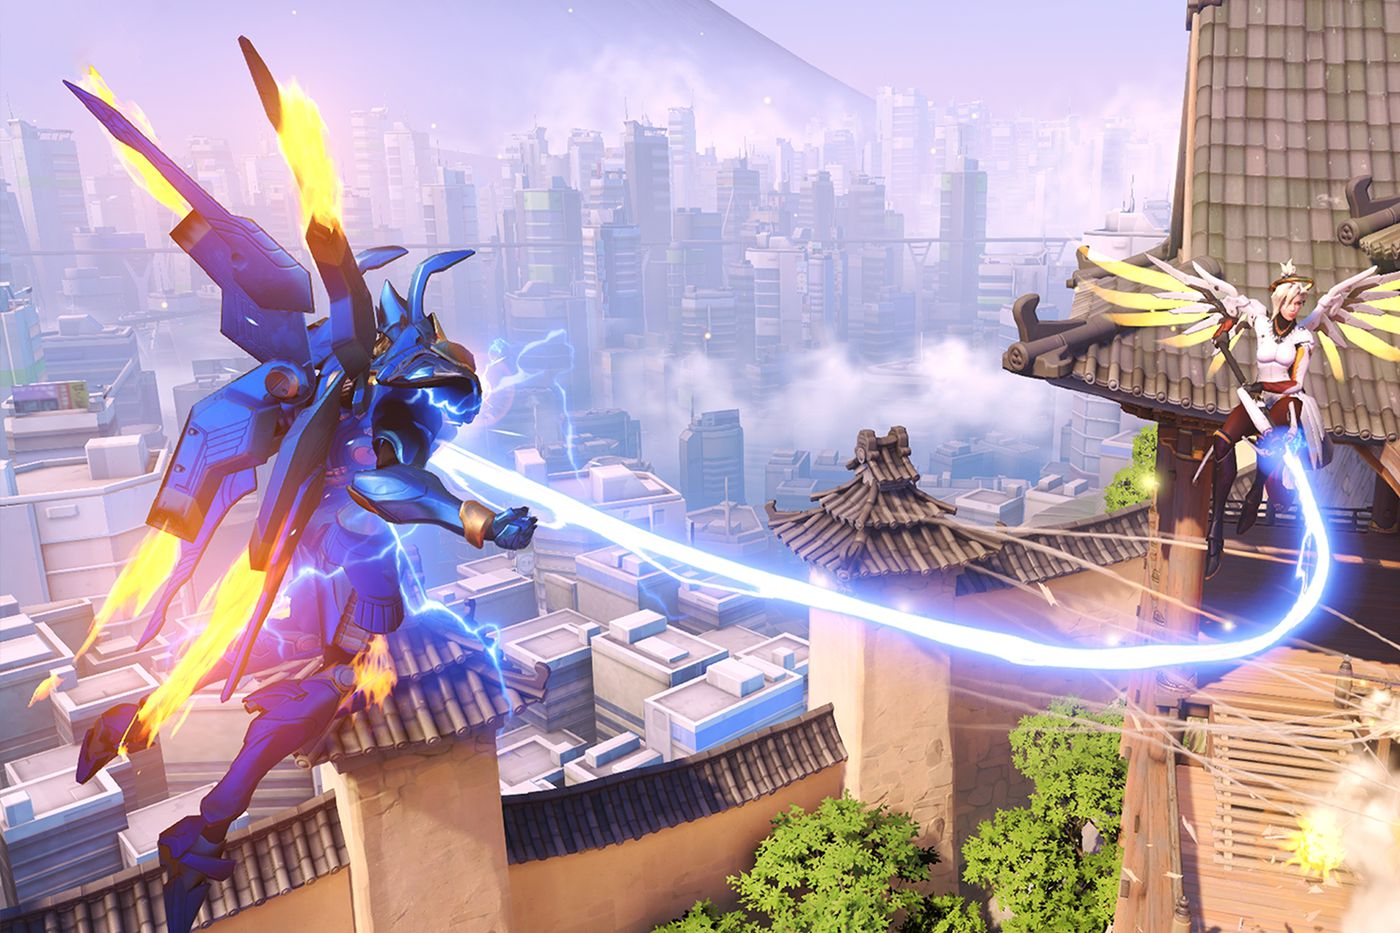 Nvidia is bringing Reflex, its latency reducing technology to Overwatch